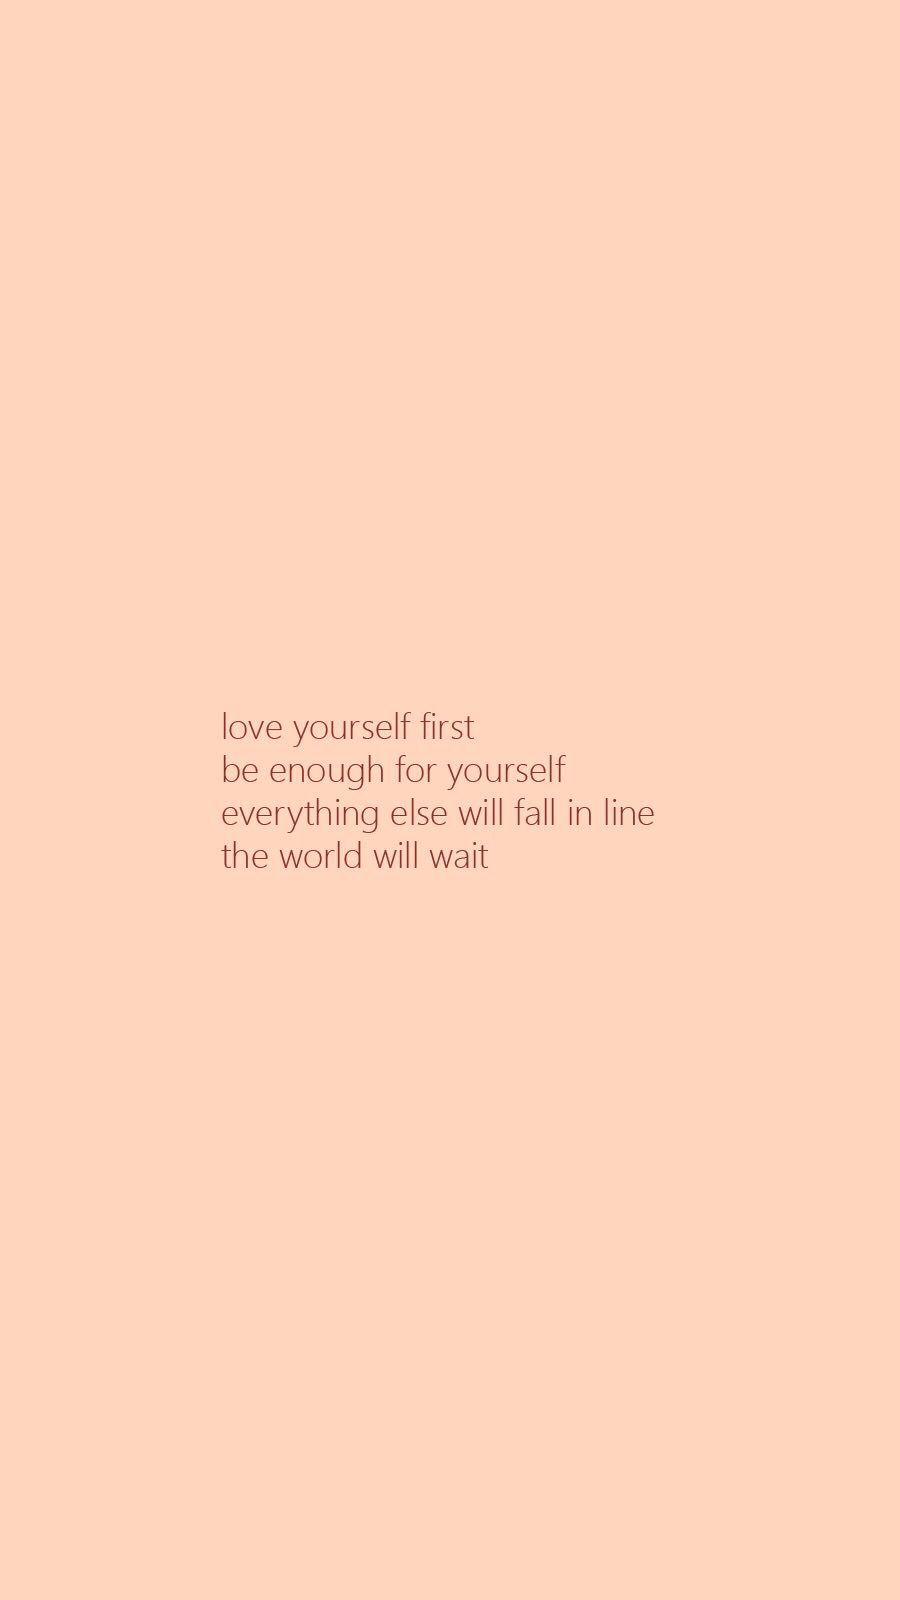 Self Love First Wallpaper Self Love Quotes Love Yourself First Quotes Love You More Quotes